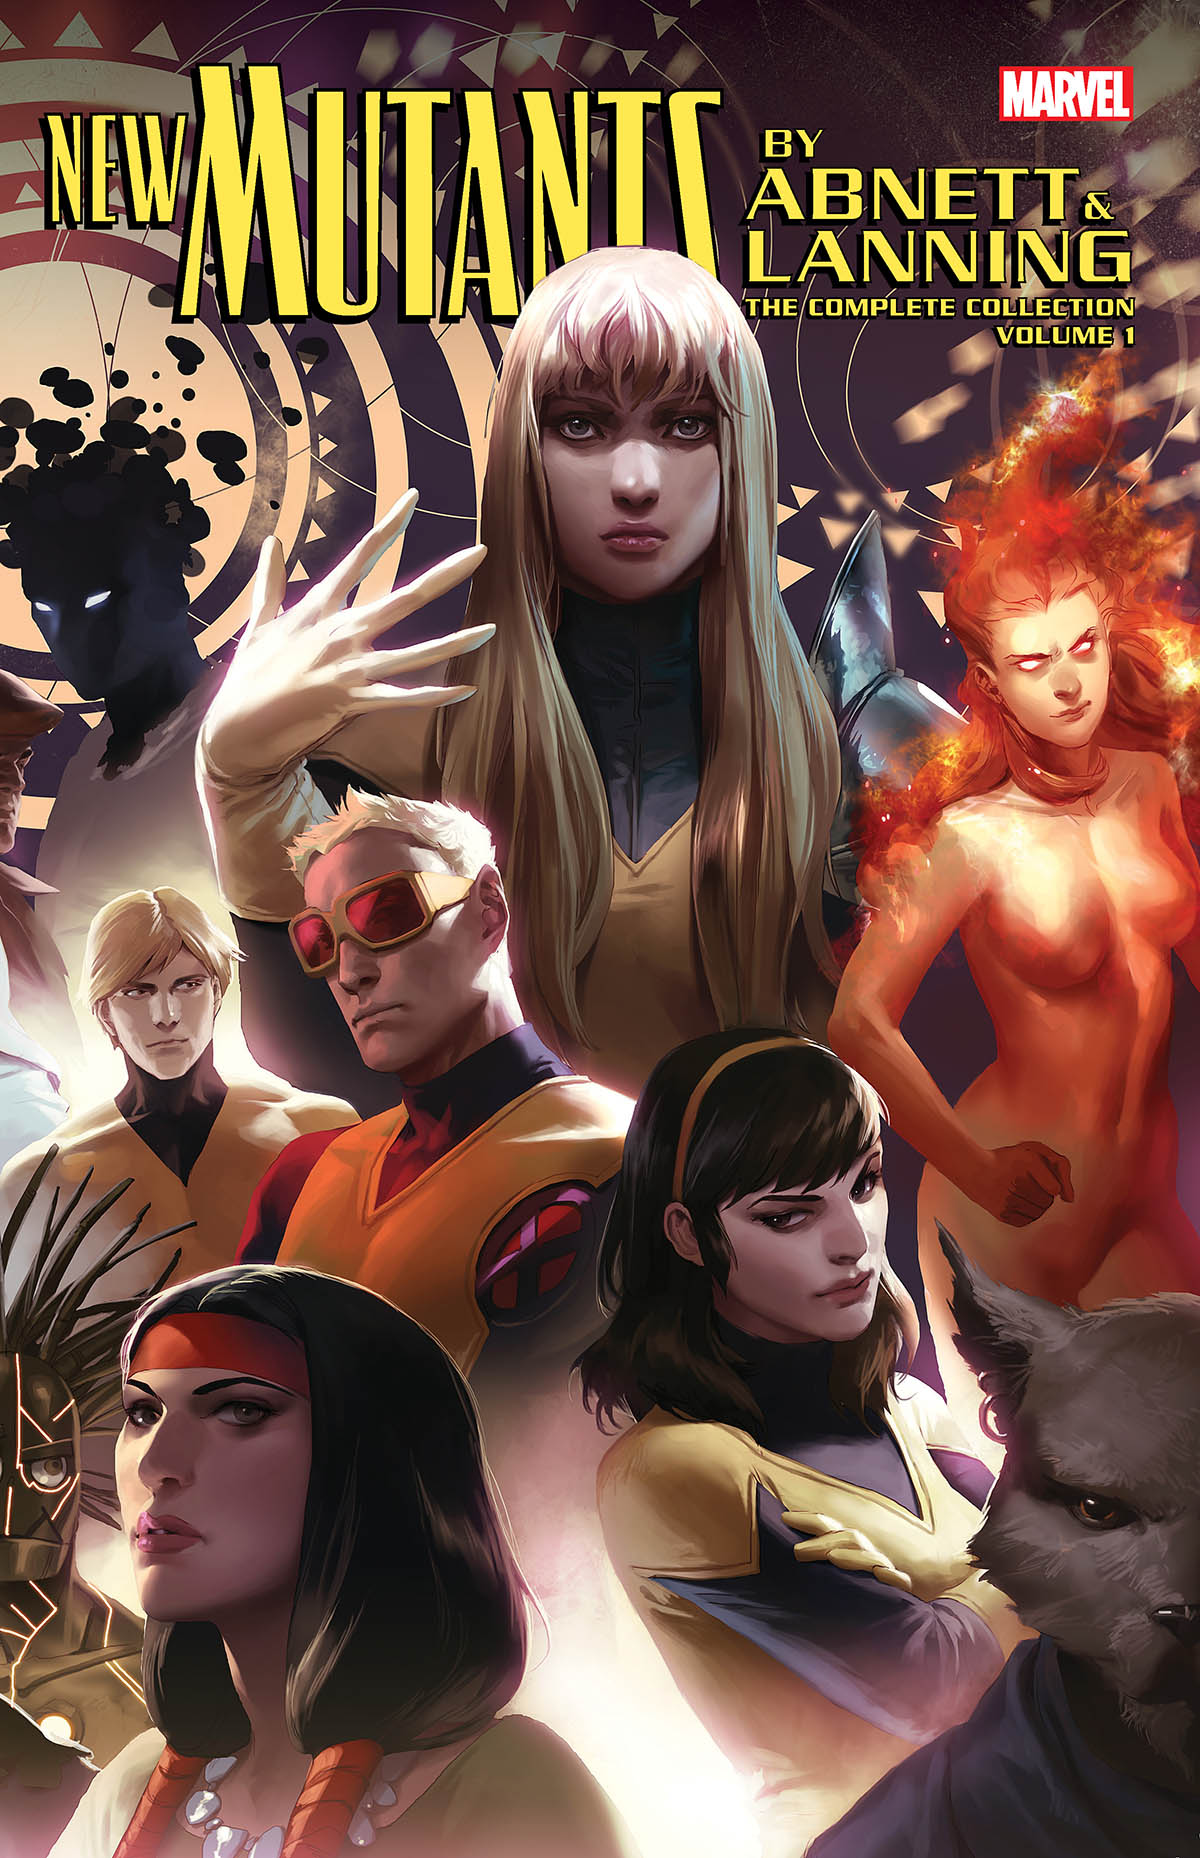 New Mutants by Abnett & Lanning: The Complete Collection Vol. 1 (Trade Paperback)